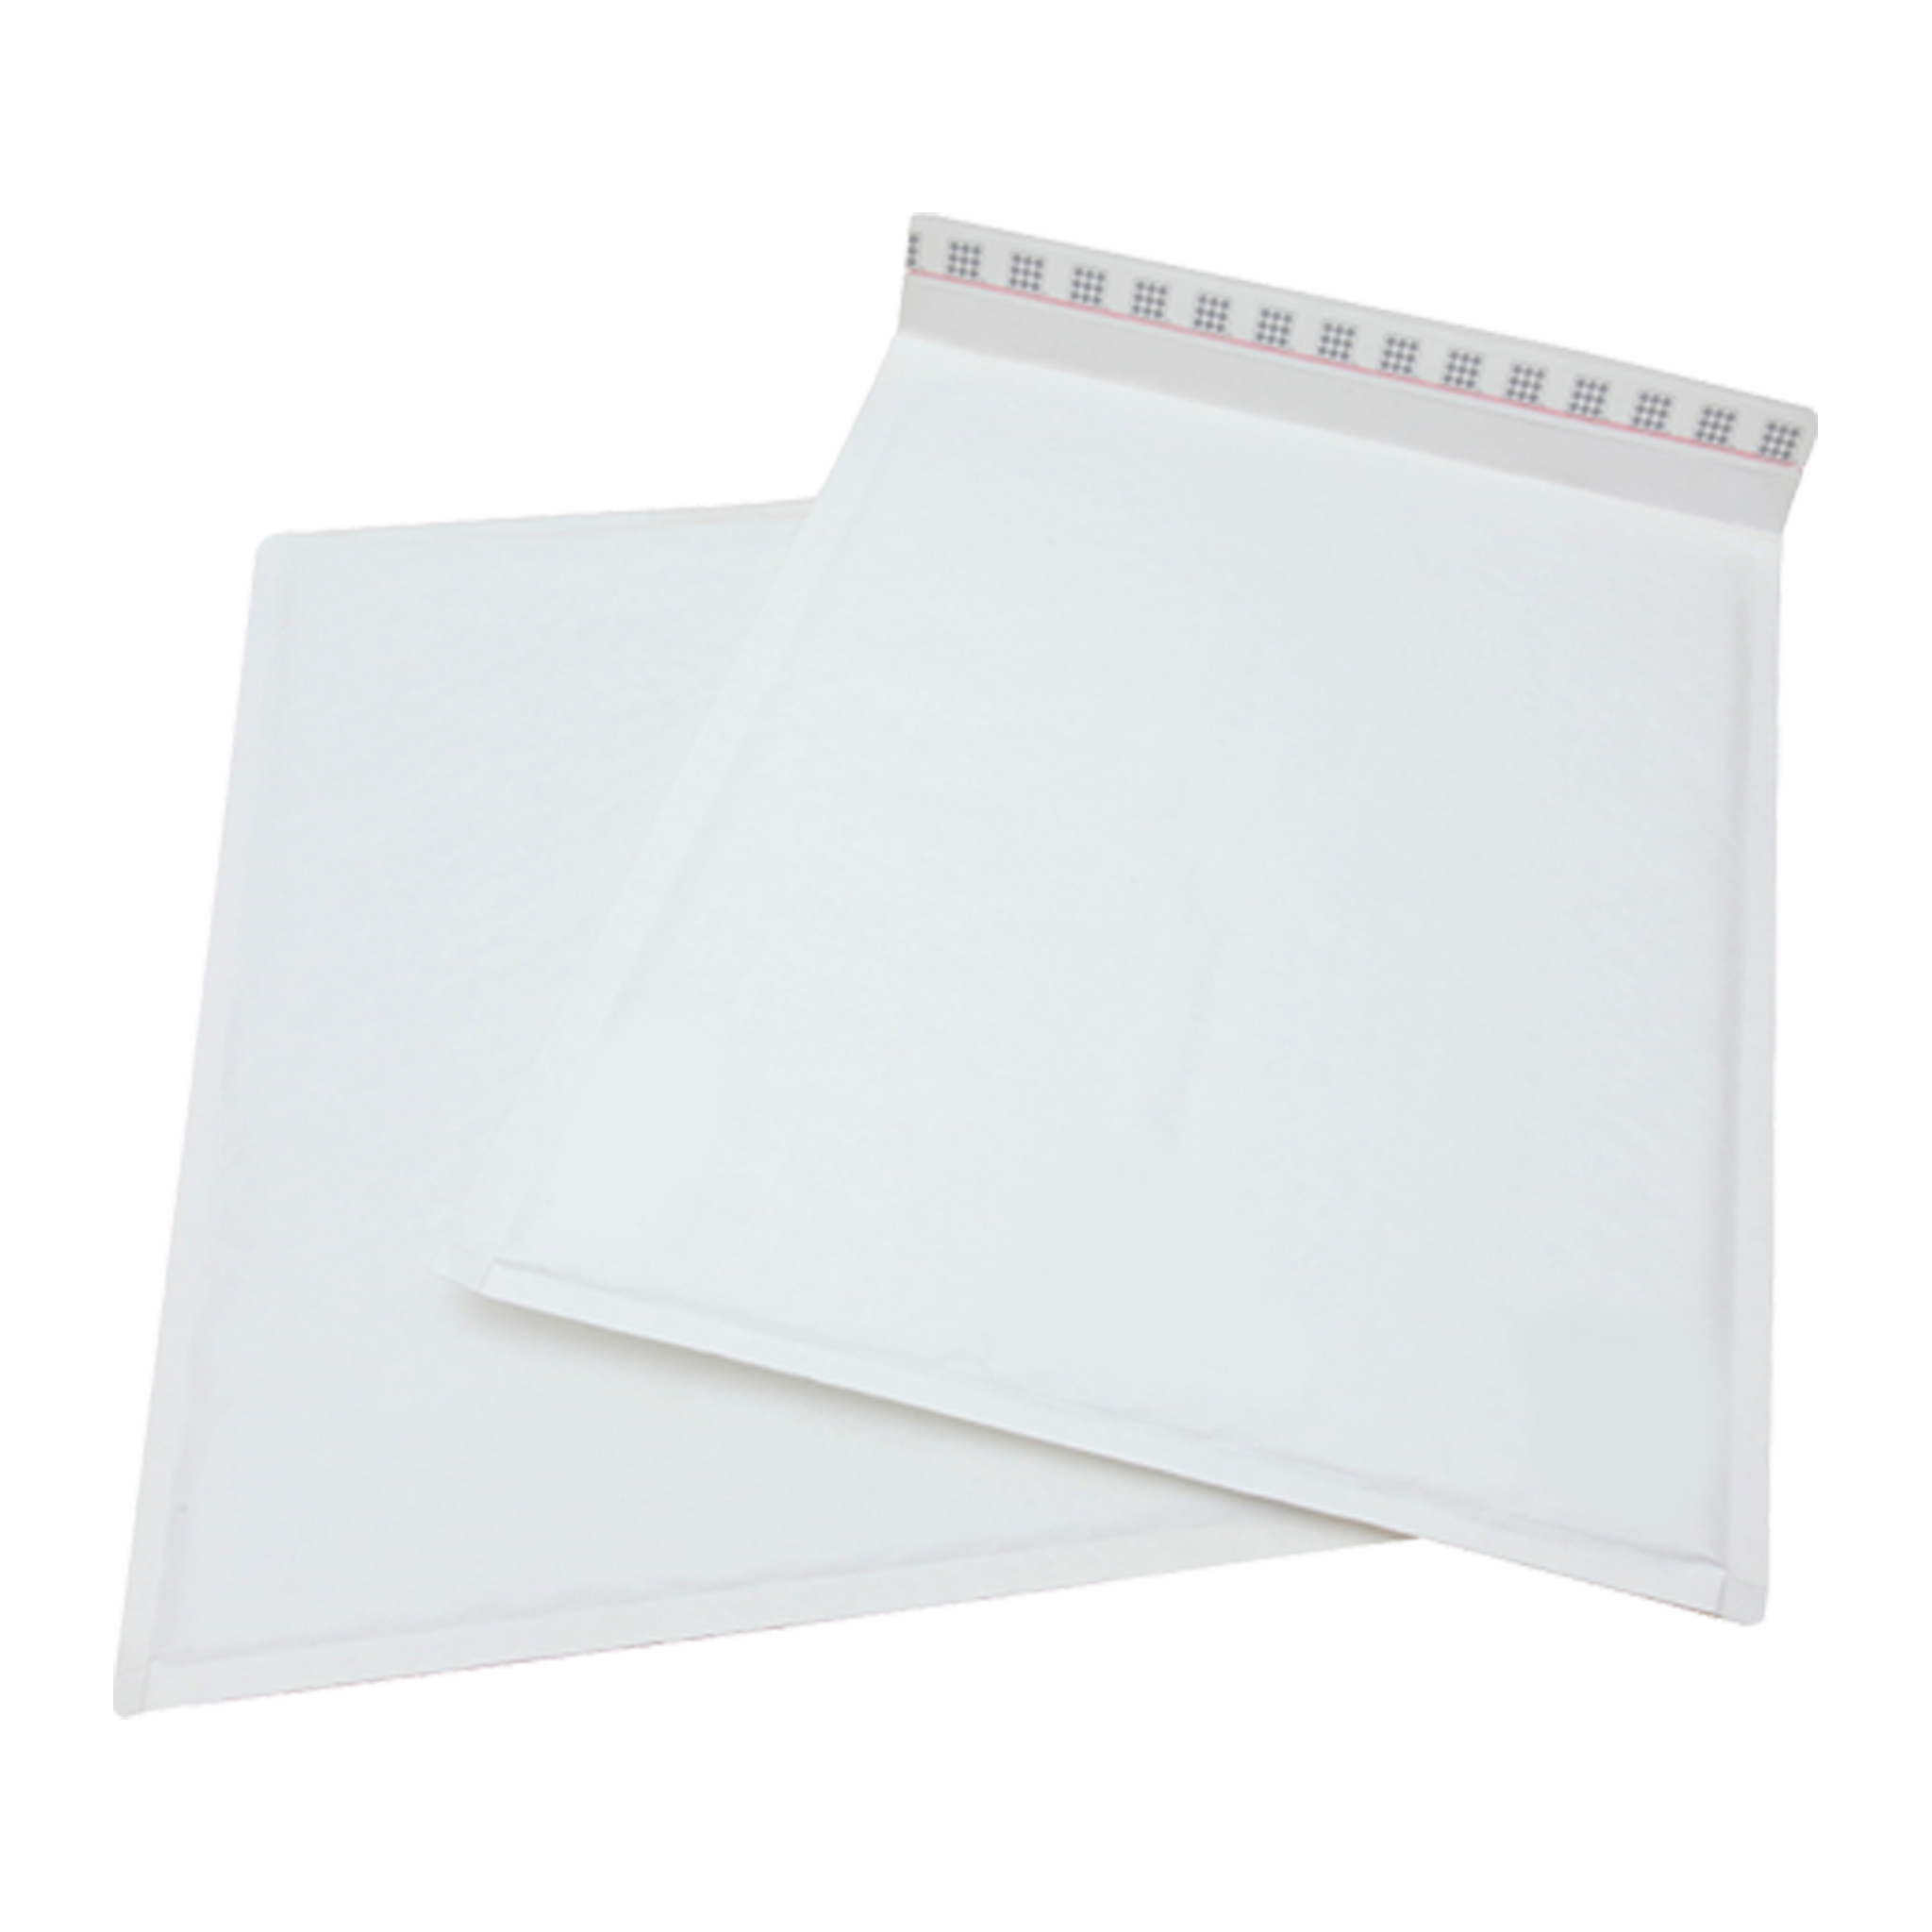 100 x White Bubble Envelopes (230mm X 340mm) - (G/4)